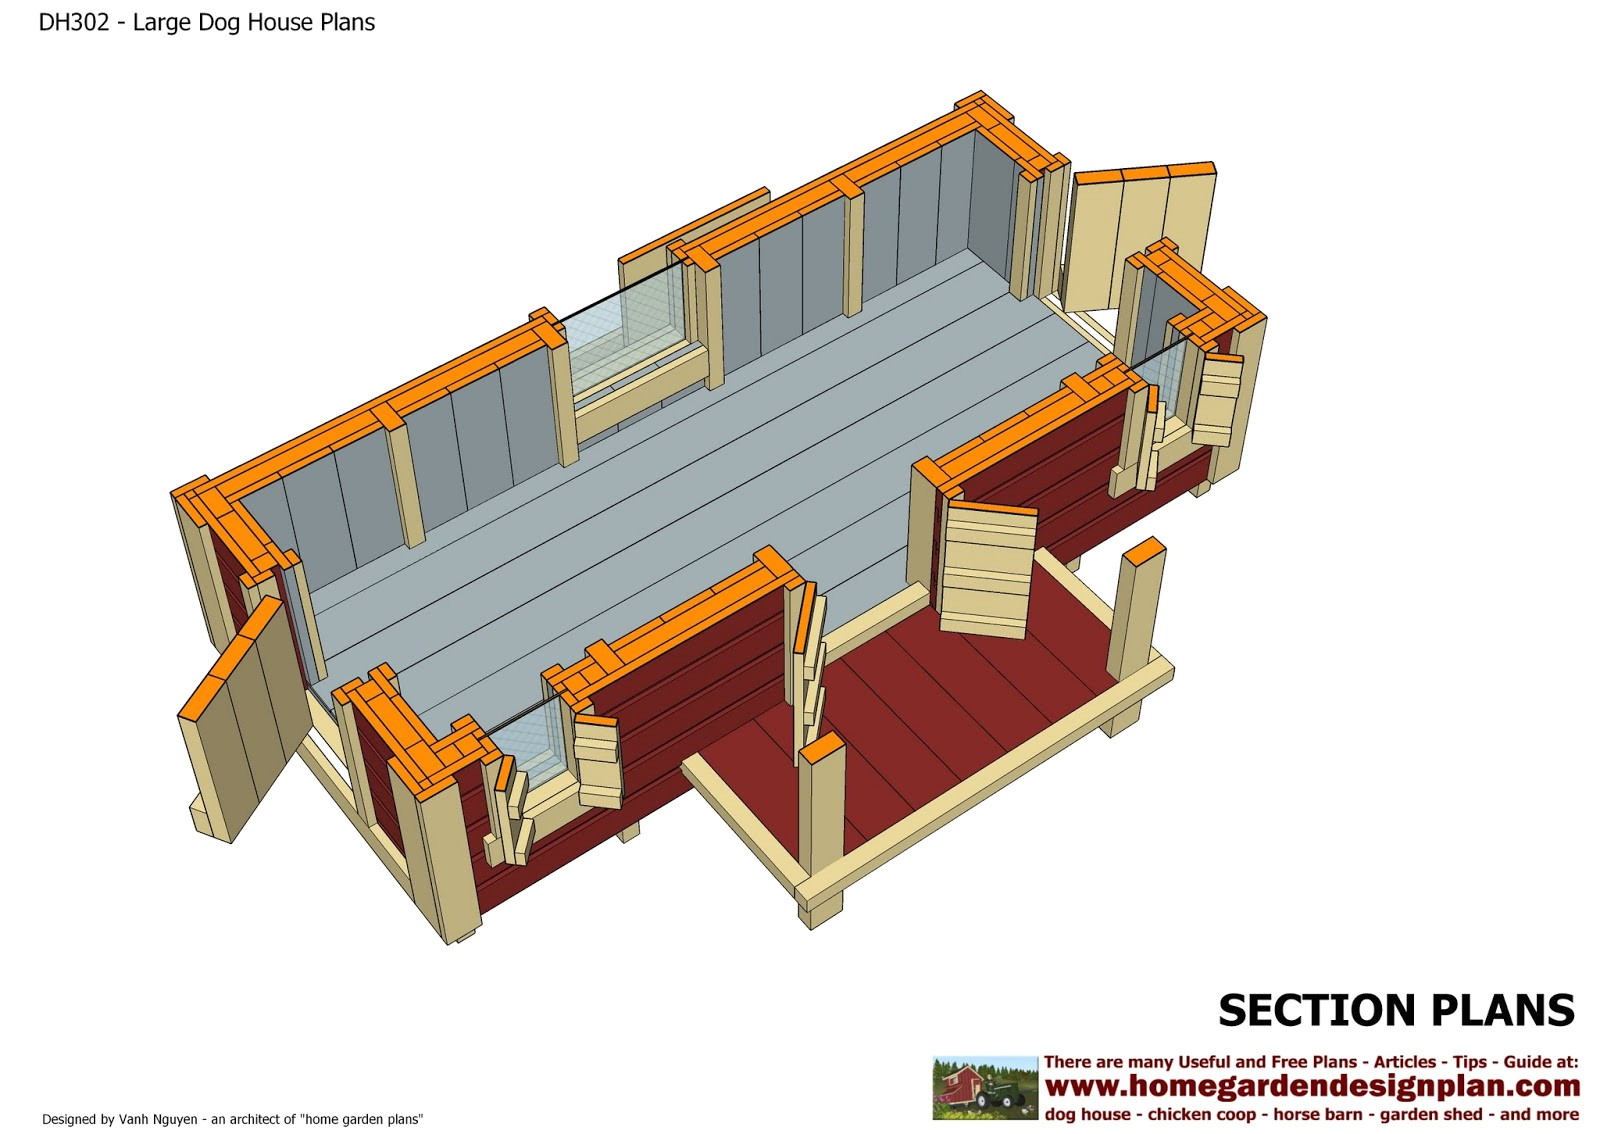 Insulated Dog House Building Plans Home Garden Plans Dh302 Insulated Dog House Plans